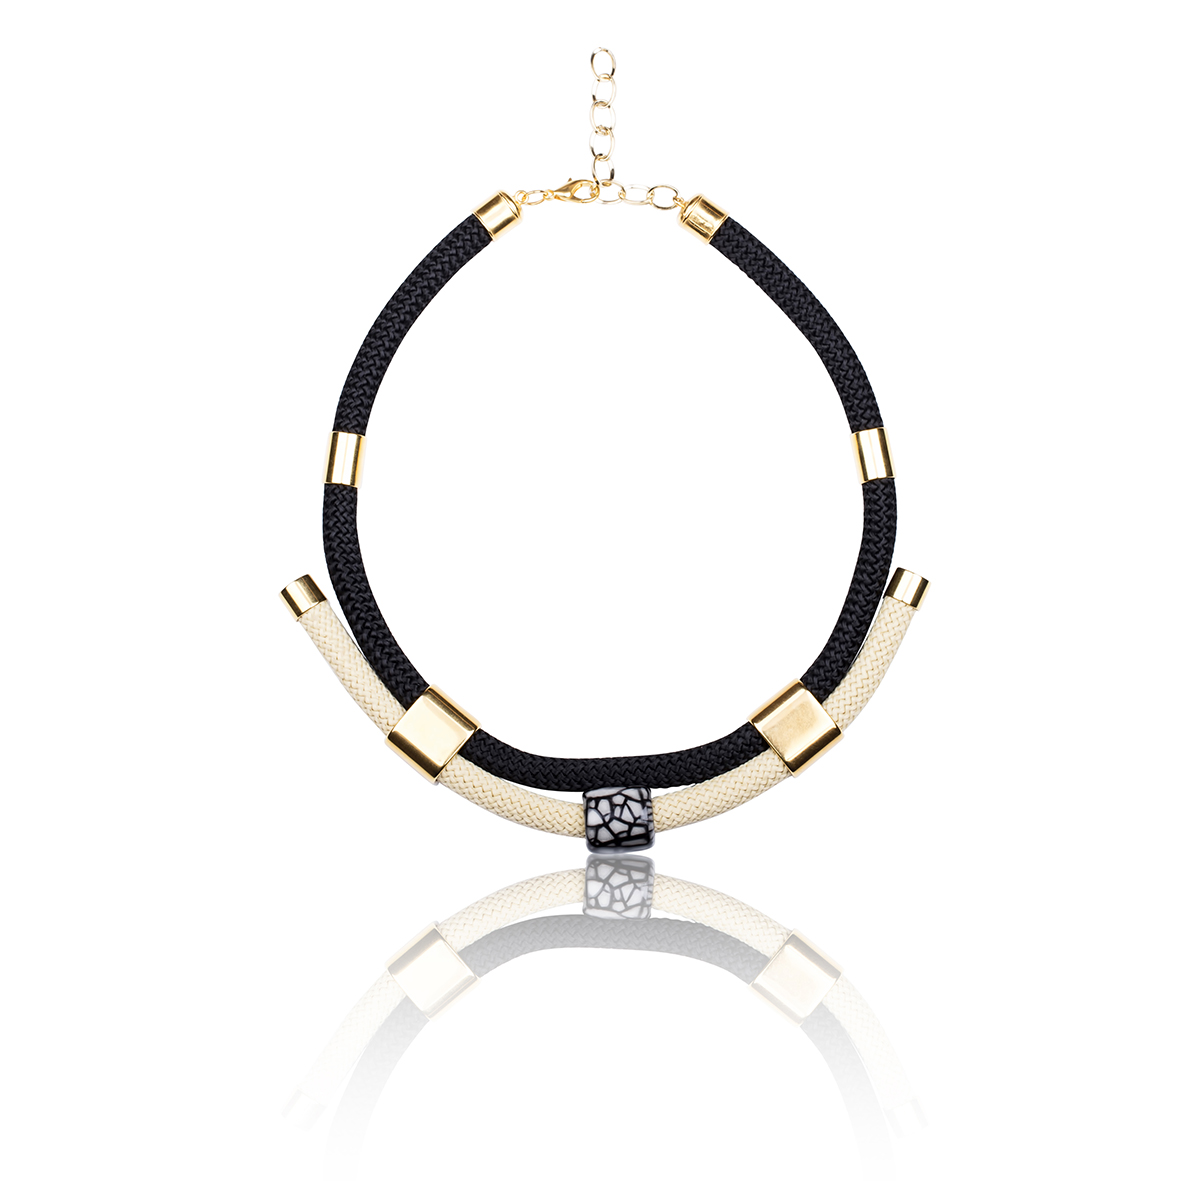 IRIS: Make a statement necklace / Black & White | Accessories,Jewelry > Necklaces,Jewelry -  Hiphunters Shop